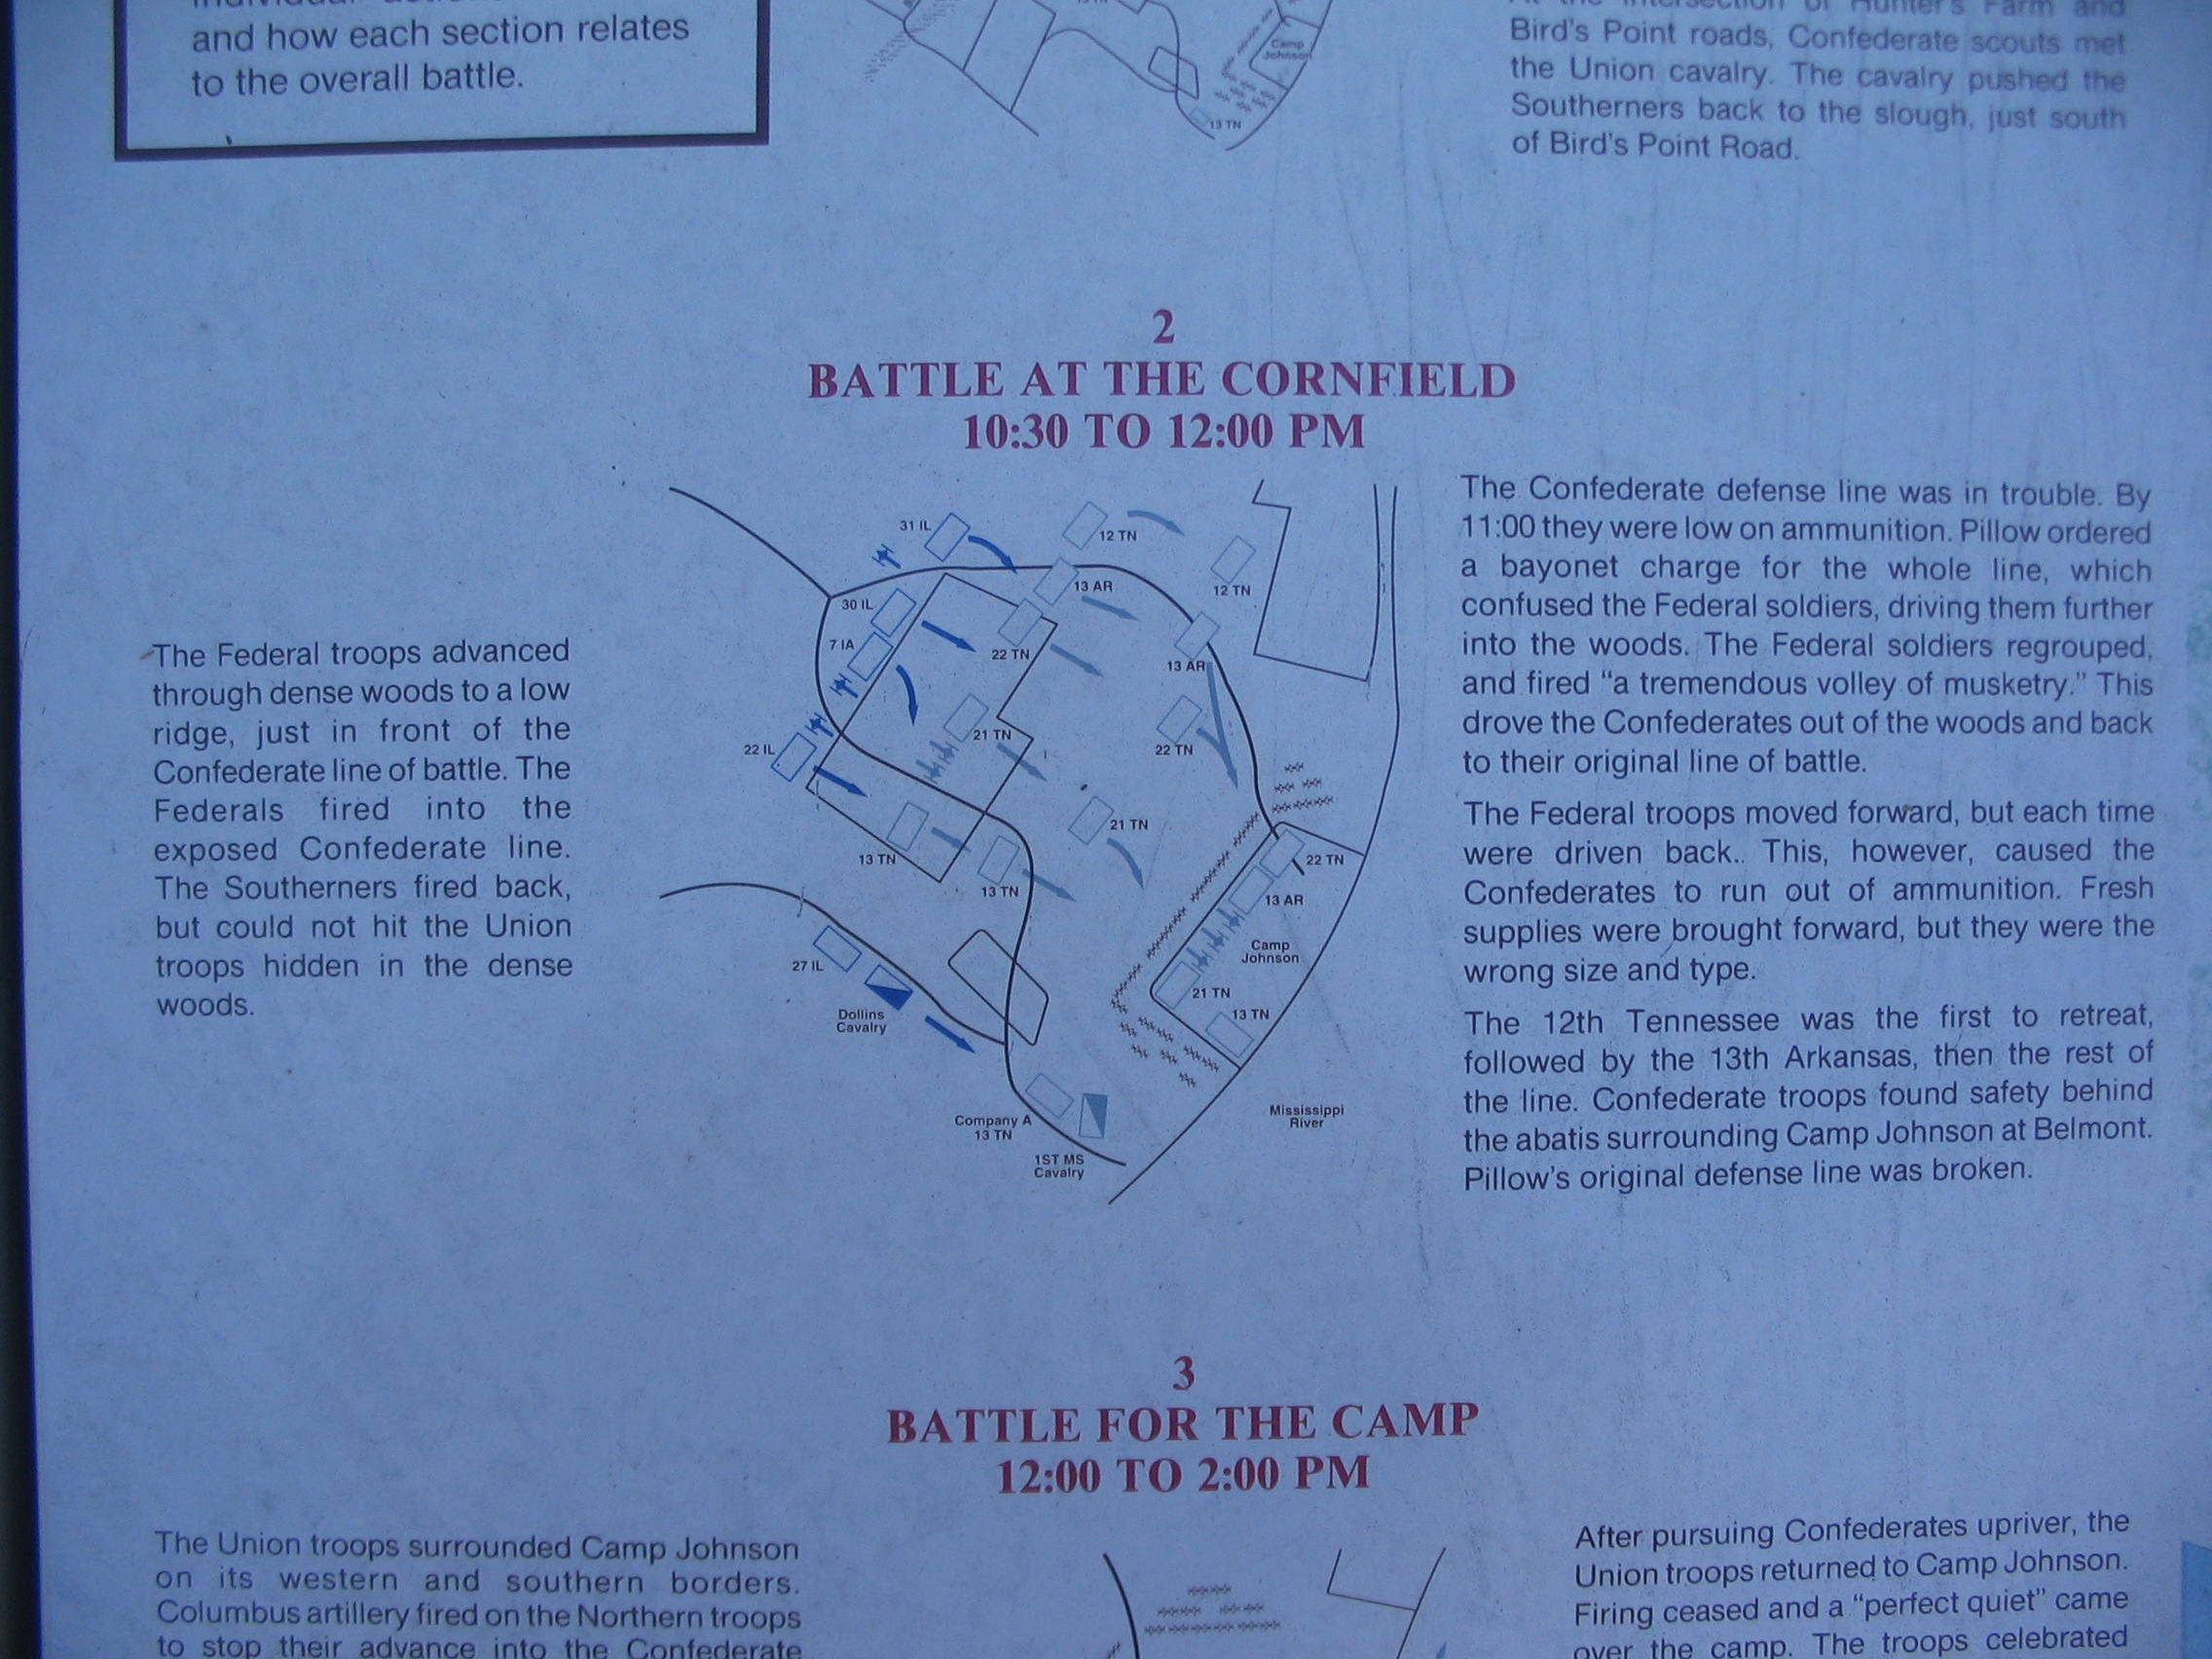 Map of the Cornfield Fighting - 10:30 to 12:00 pm